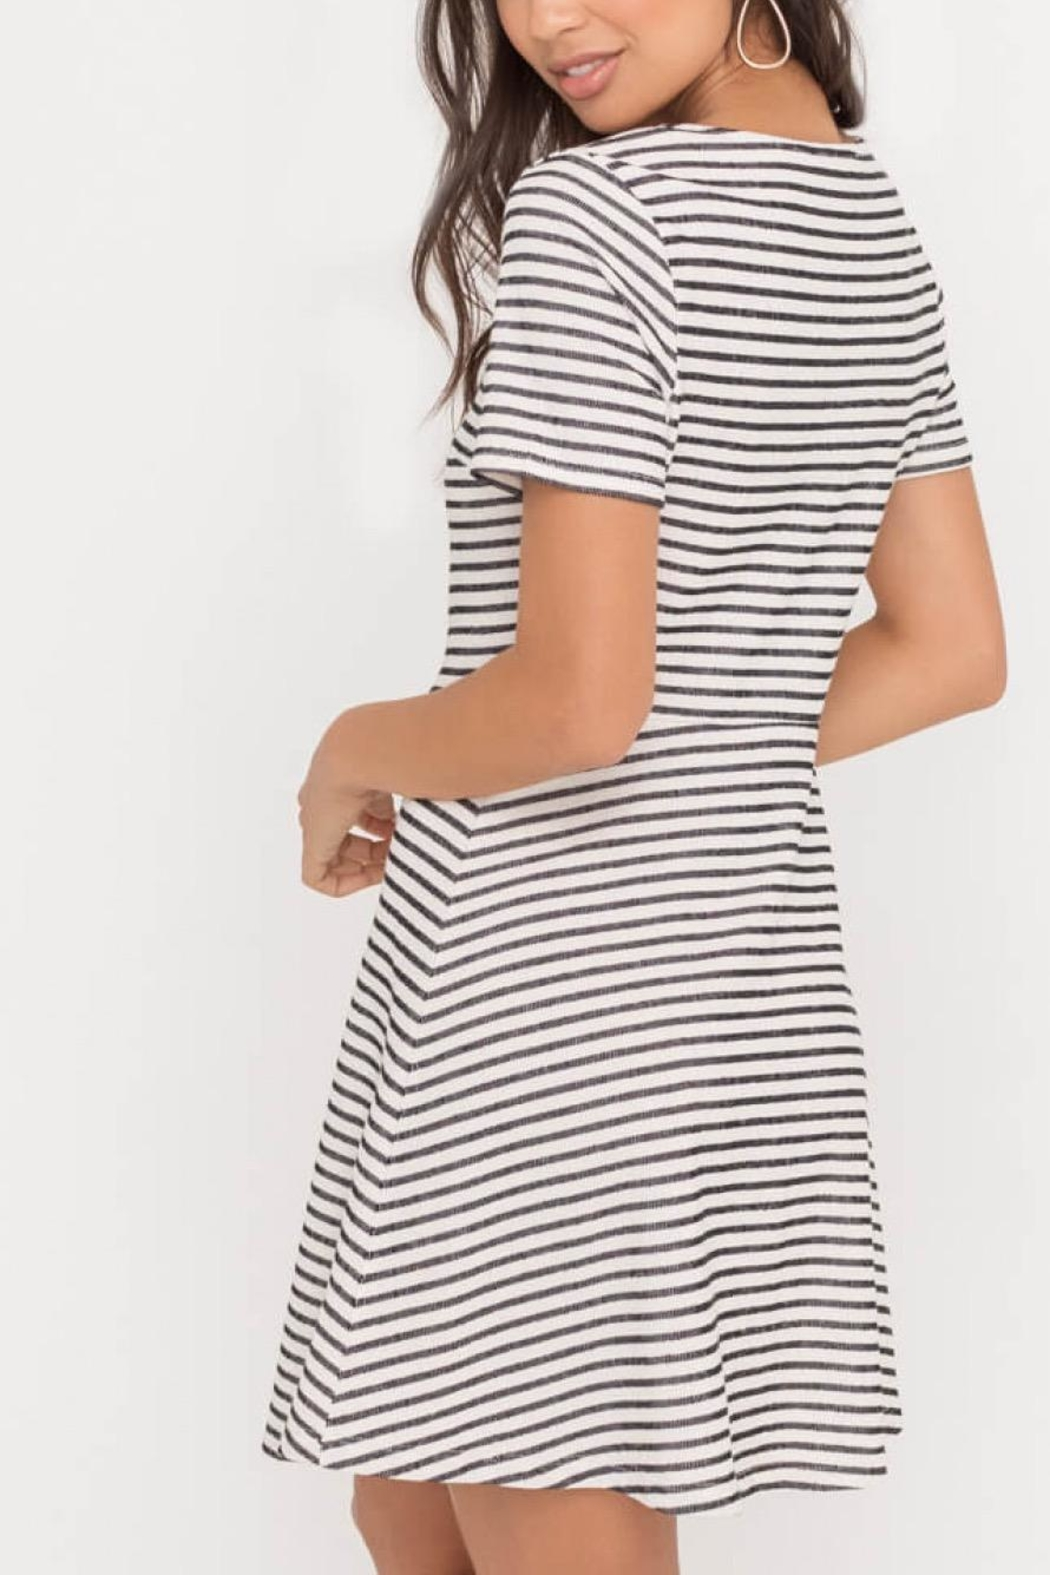 Lush Clothing  Button Down Mini-Dress - Side Cropped Image